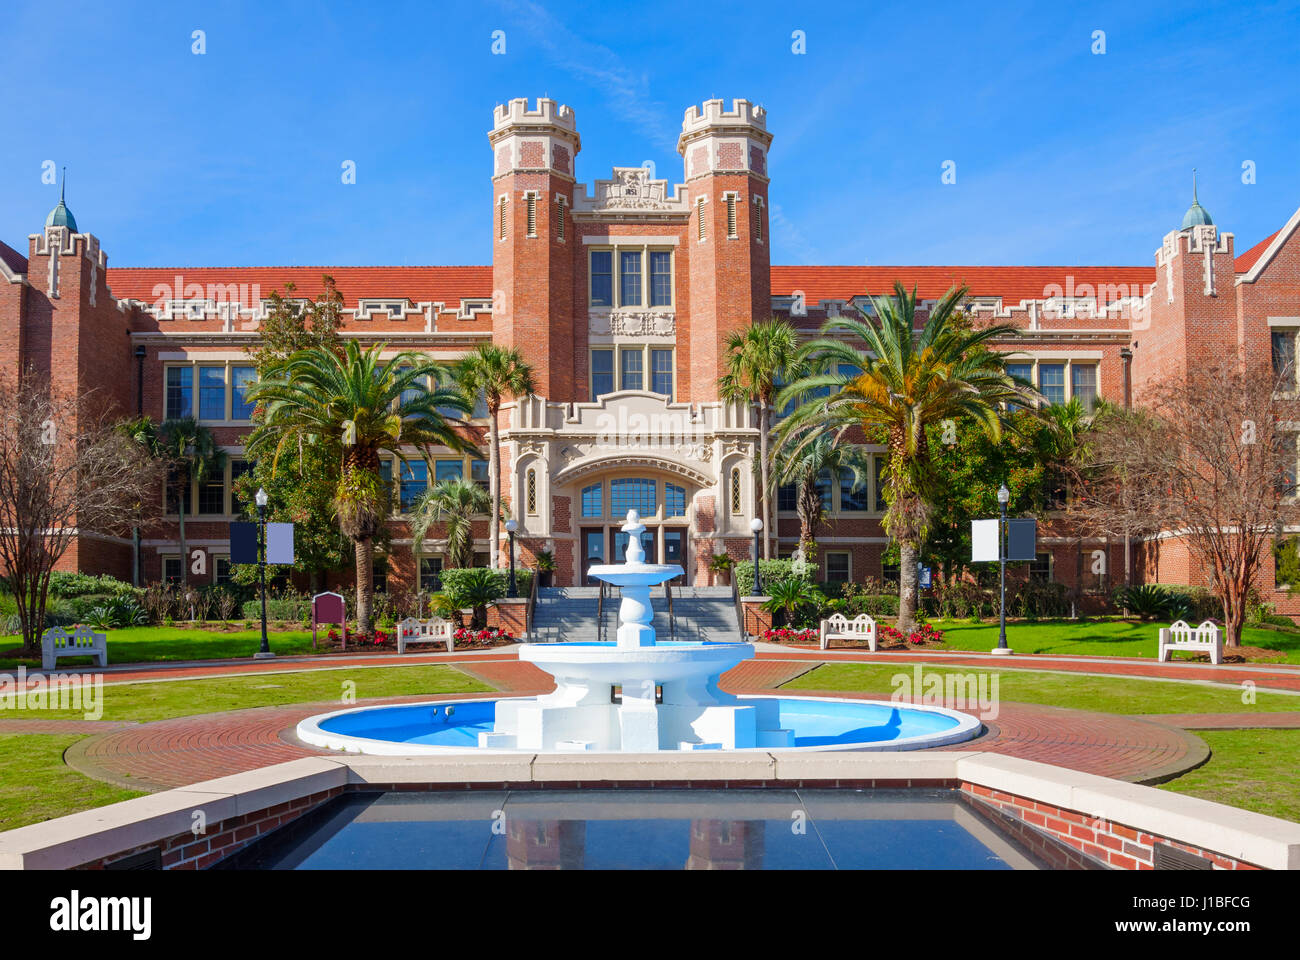 Westcott Building on the Florida State University campus in Tallahassee, Florida, USA. Florida State U is a public - Stock Image